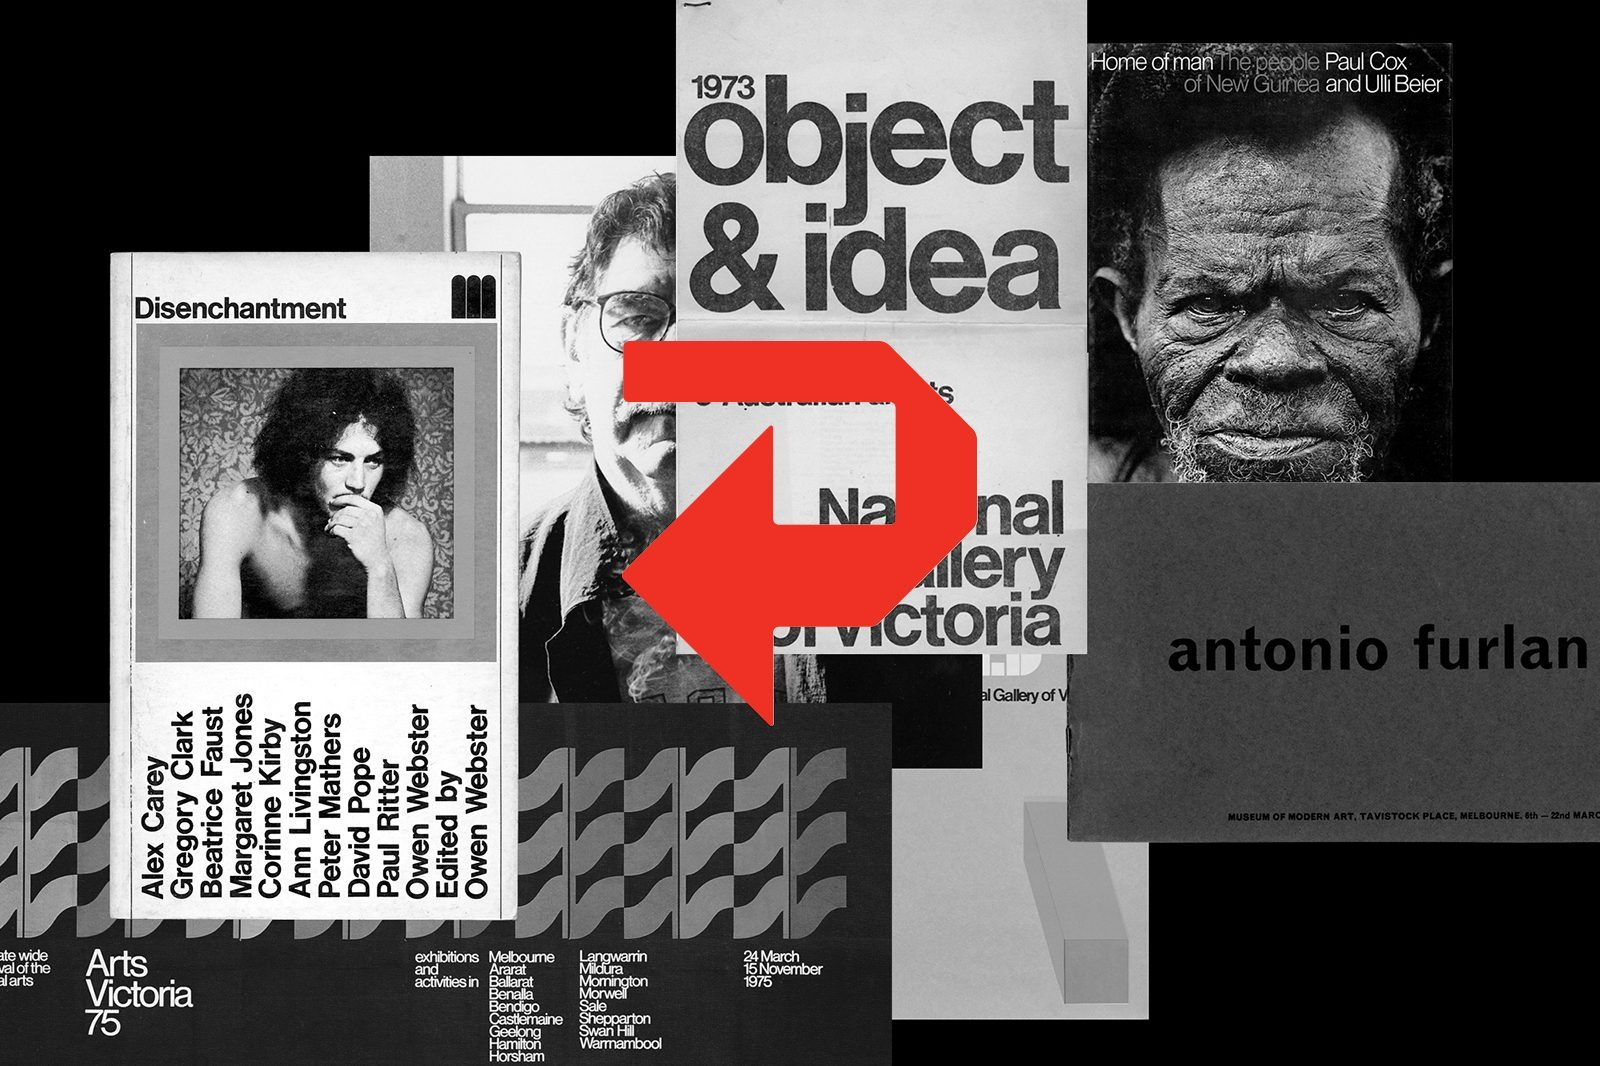 Design revisited: Graphic design Re:collection with Dominic Hofstede